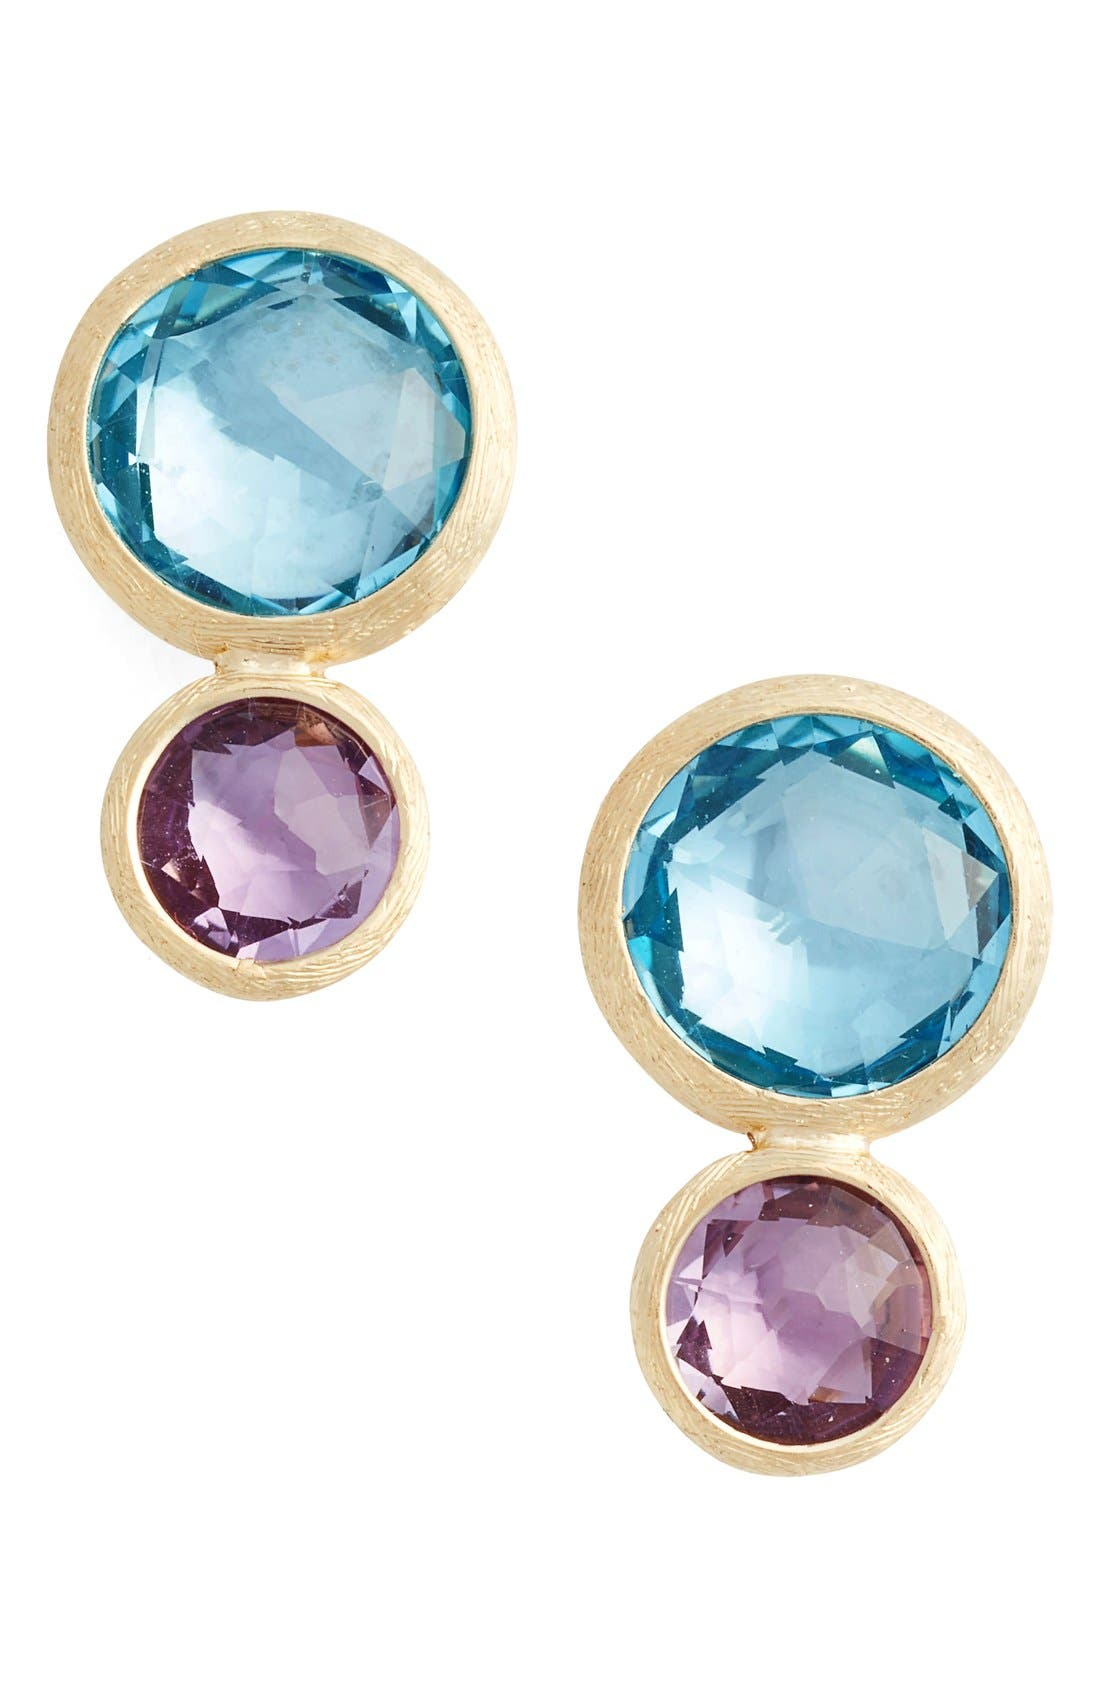 Marco Bicego Jaipur Semiprecious Stone Drop Earrings